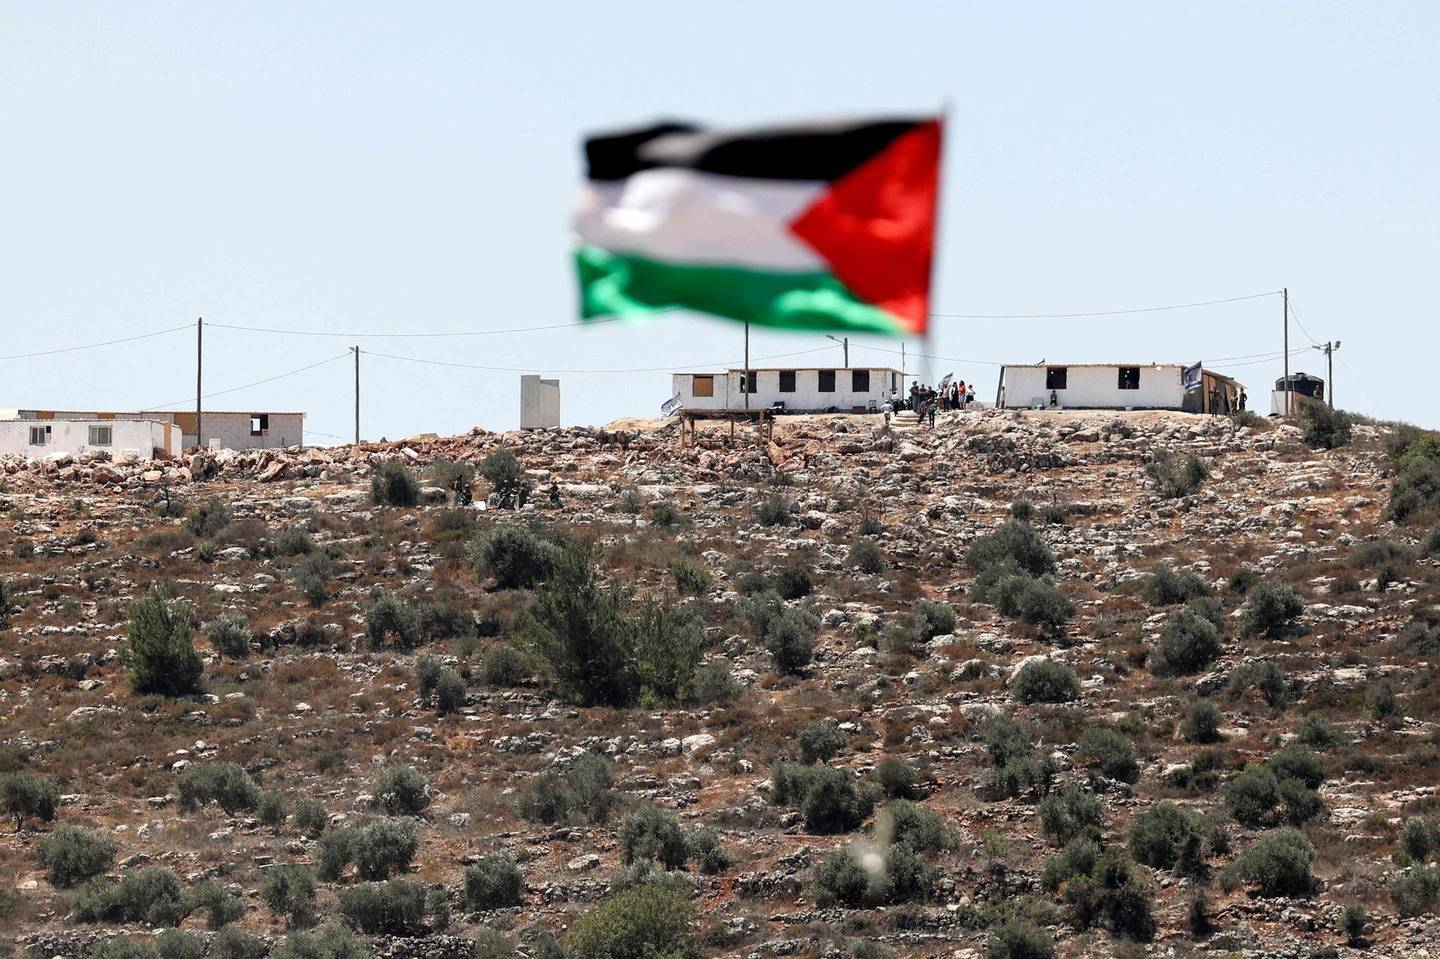 The flag of Palestine flutters on a rooftop across from the newly-built Israeli settler outpost in the village of Beita, south of Nablus in the occupied West Bank on June 18, 2021, following a protest against Israeli settlements. / AFP / ABBAS MOMANI